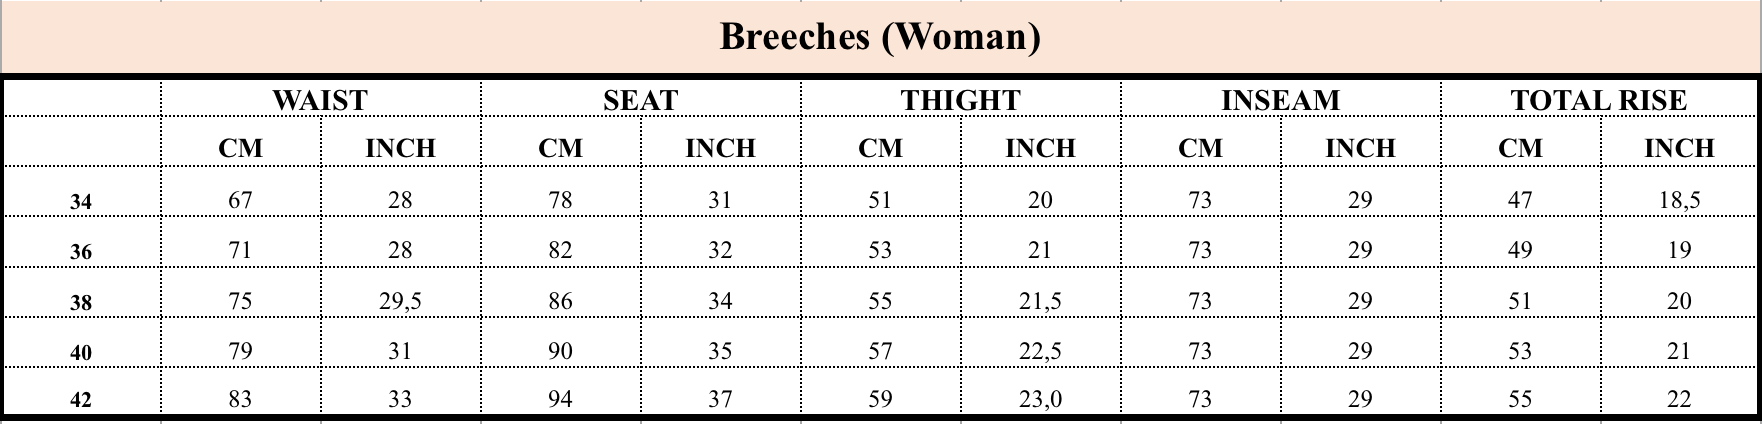 Breeches.png